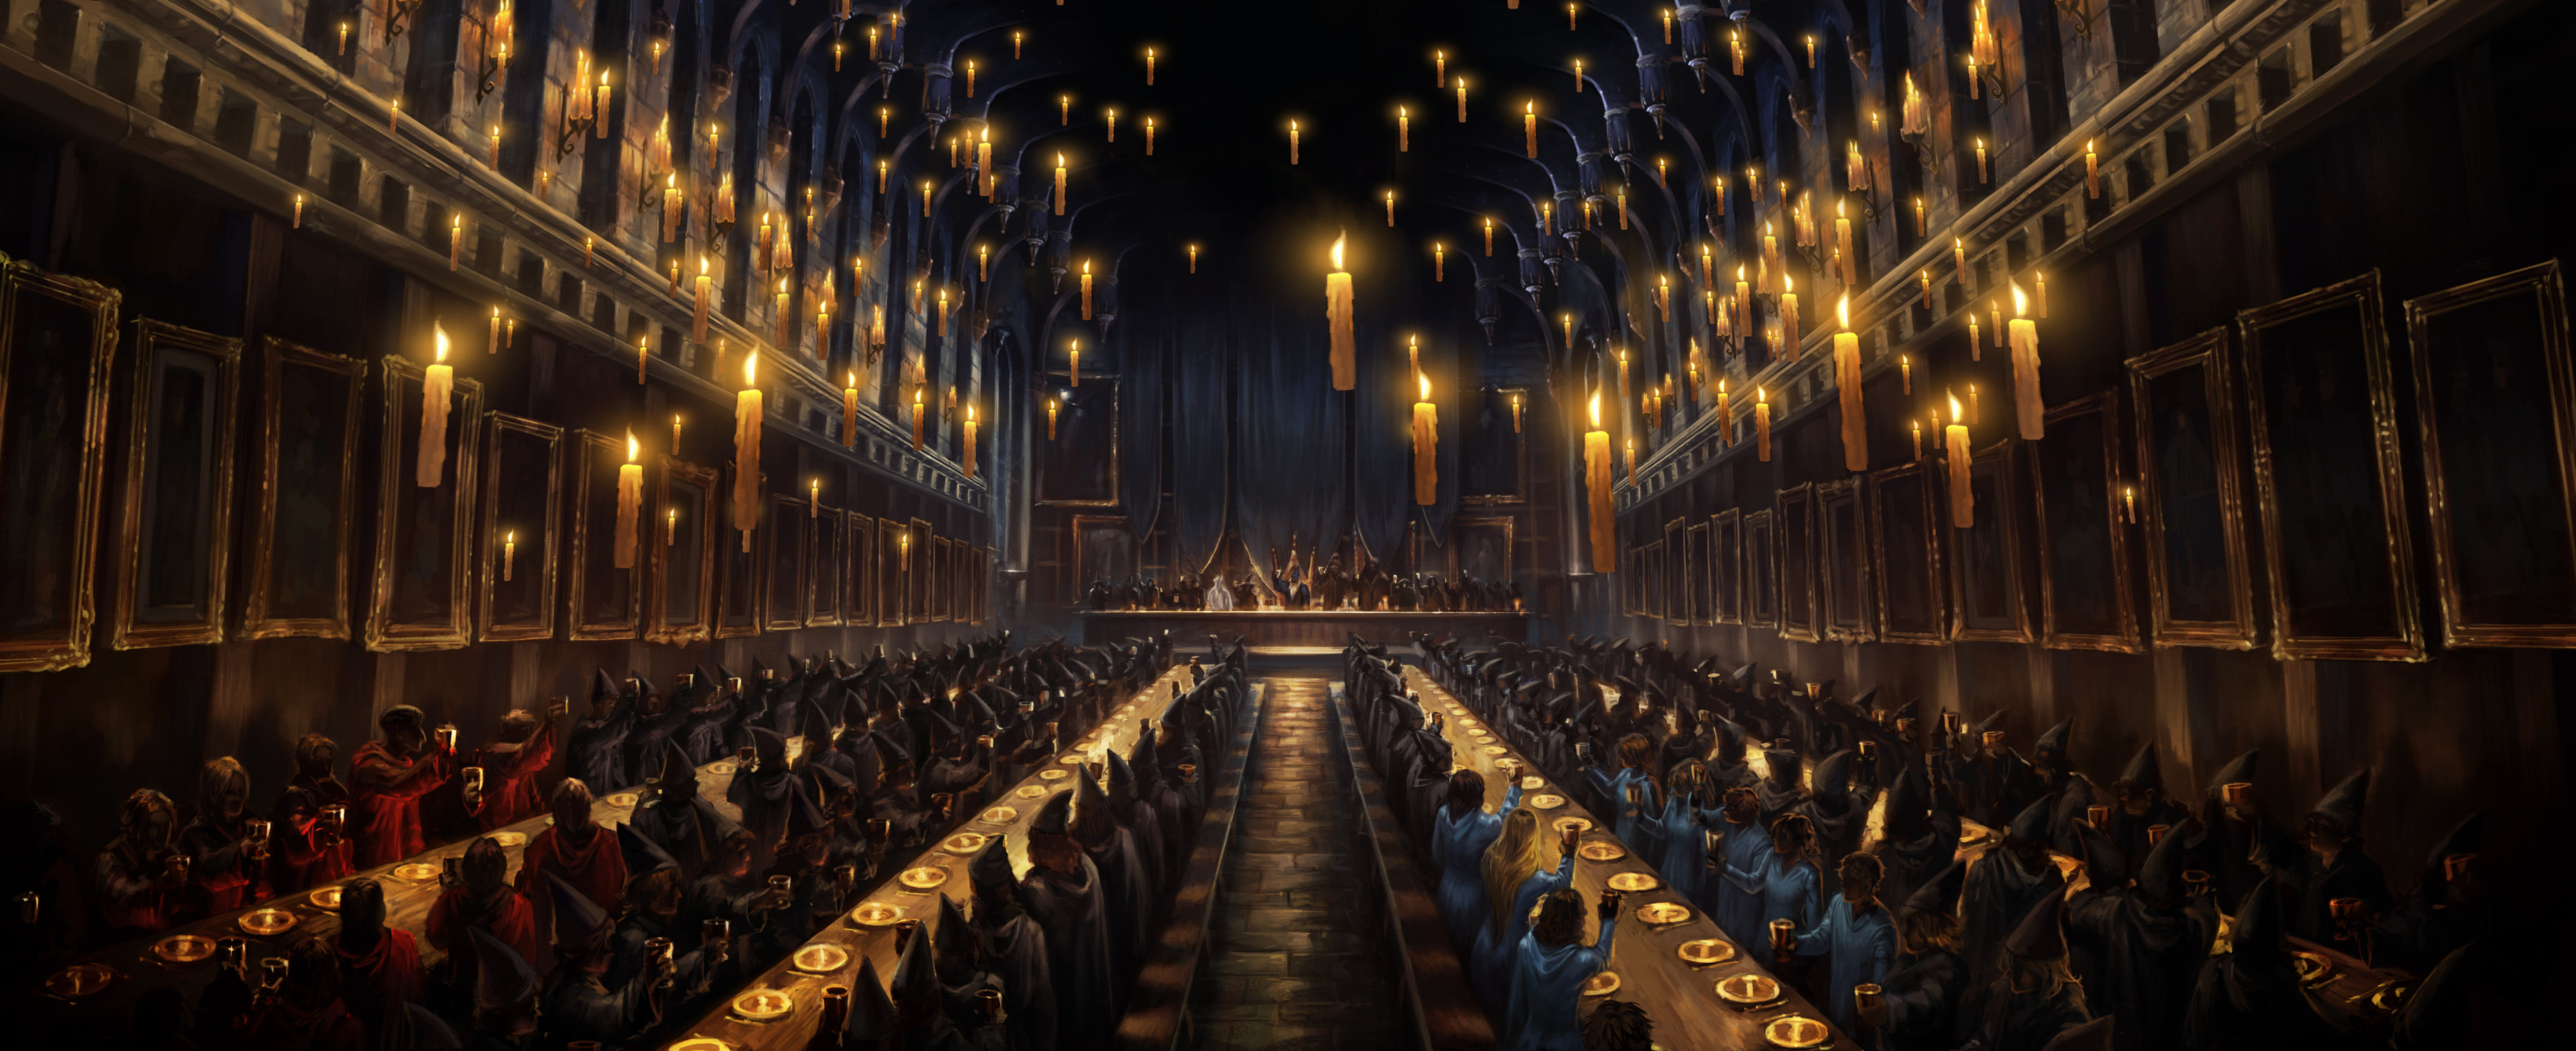 The students mourn Cedric Diggory's death in the Great Hall